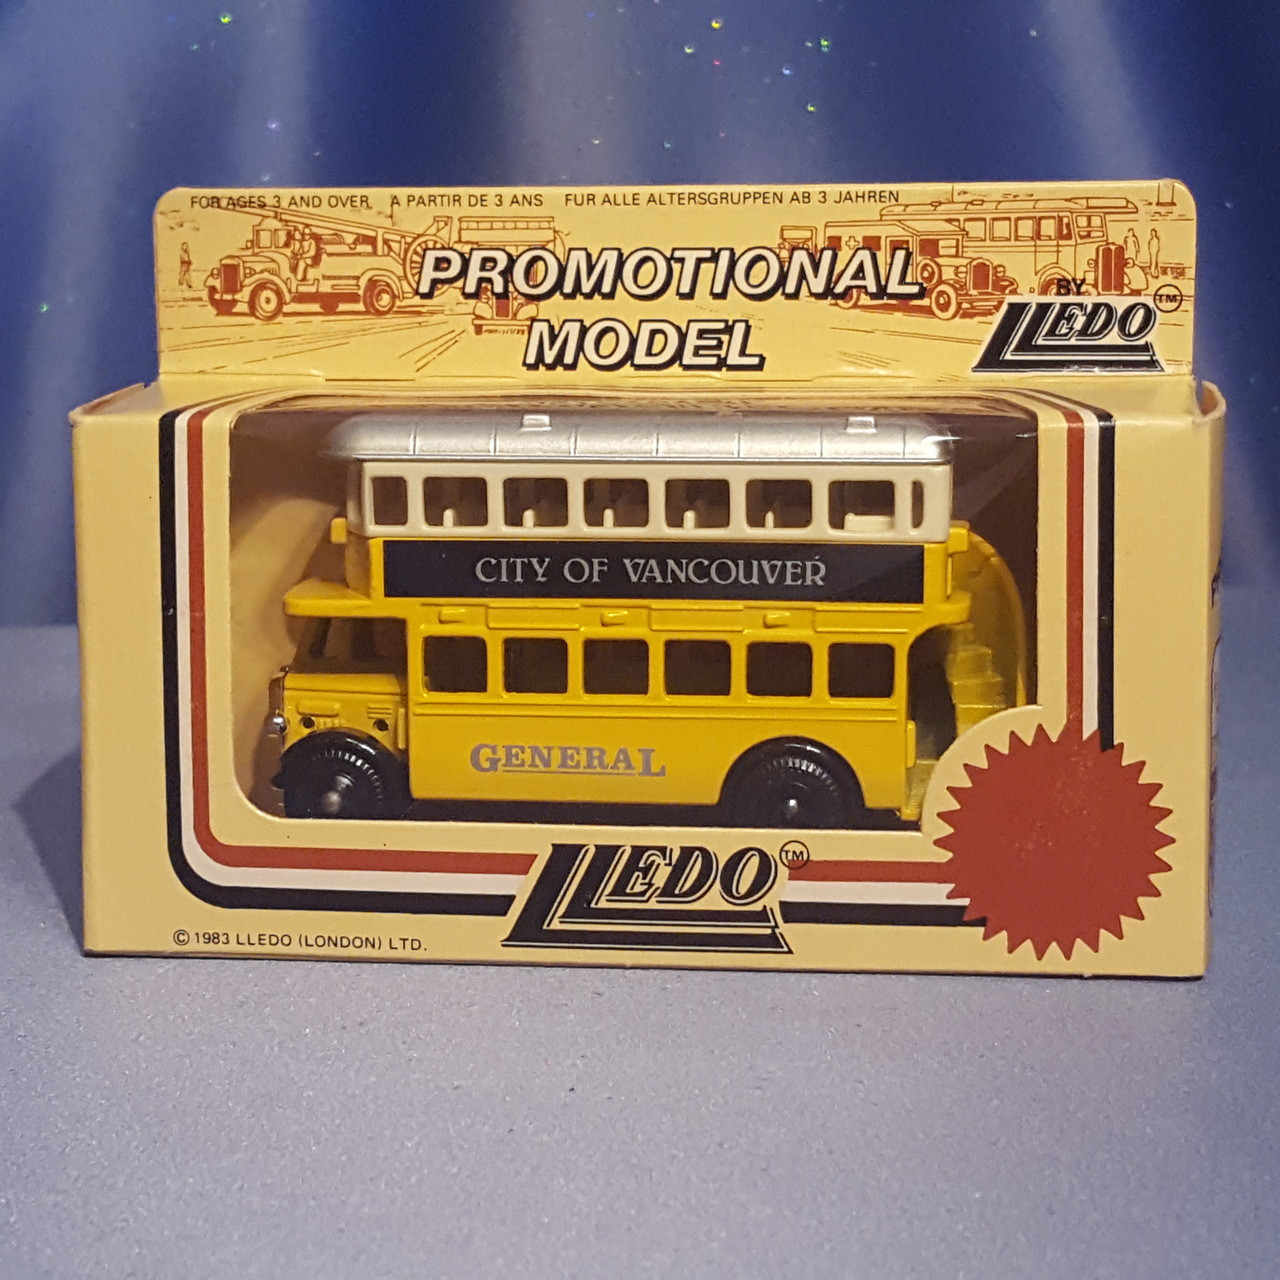 1930's Double Decker Bus - City of Vancouver - Models o